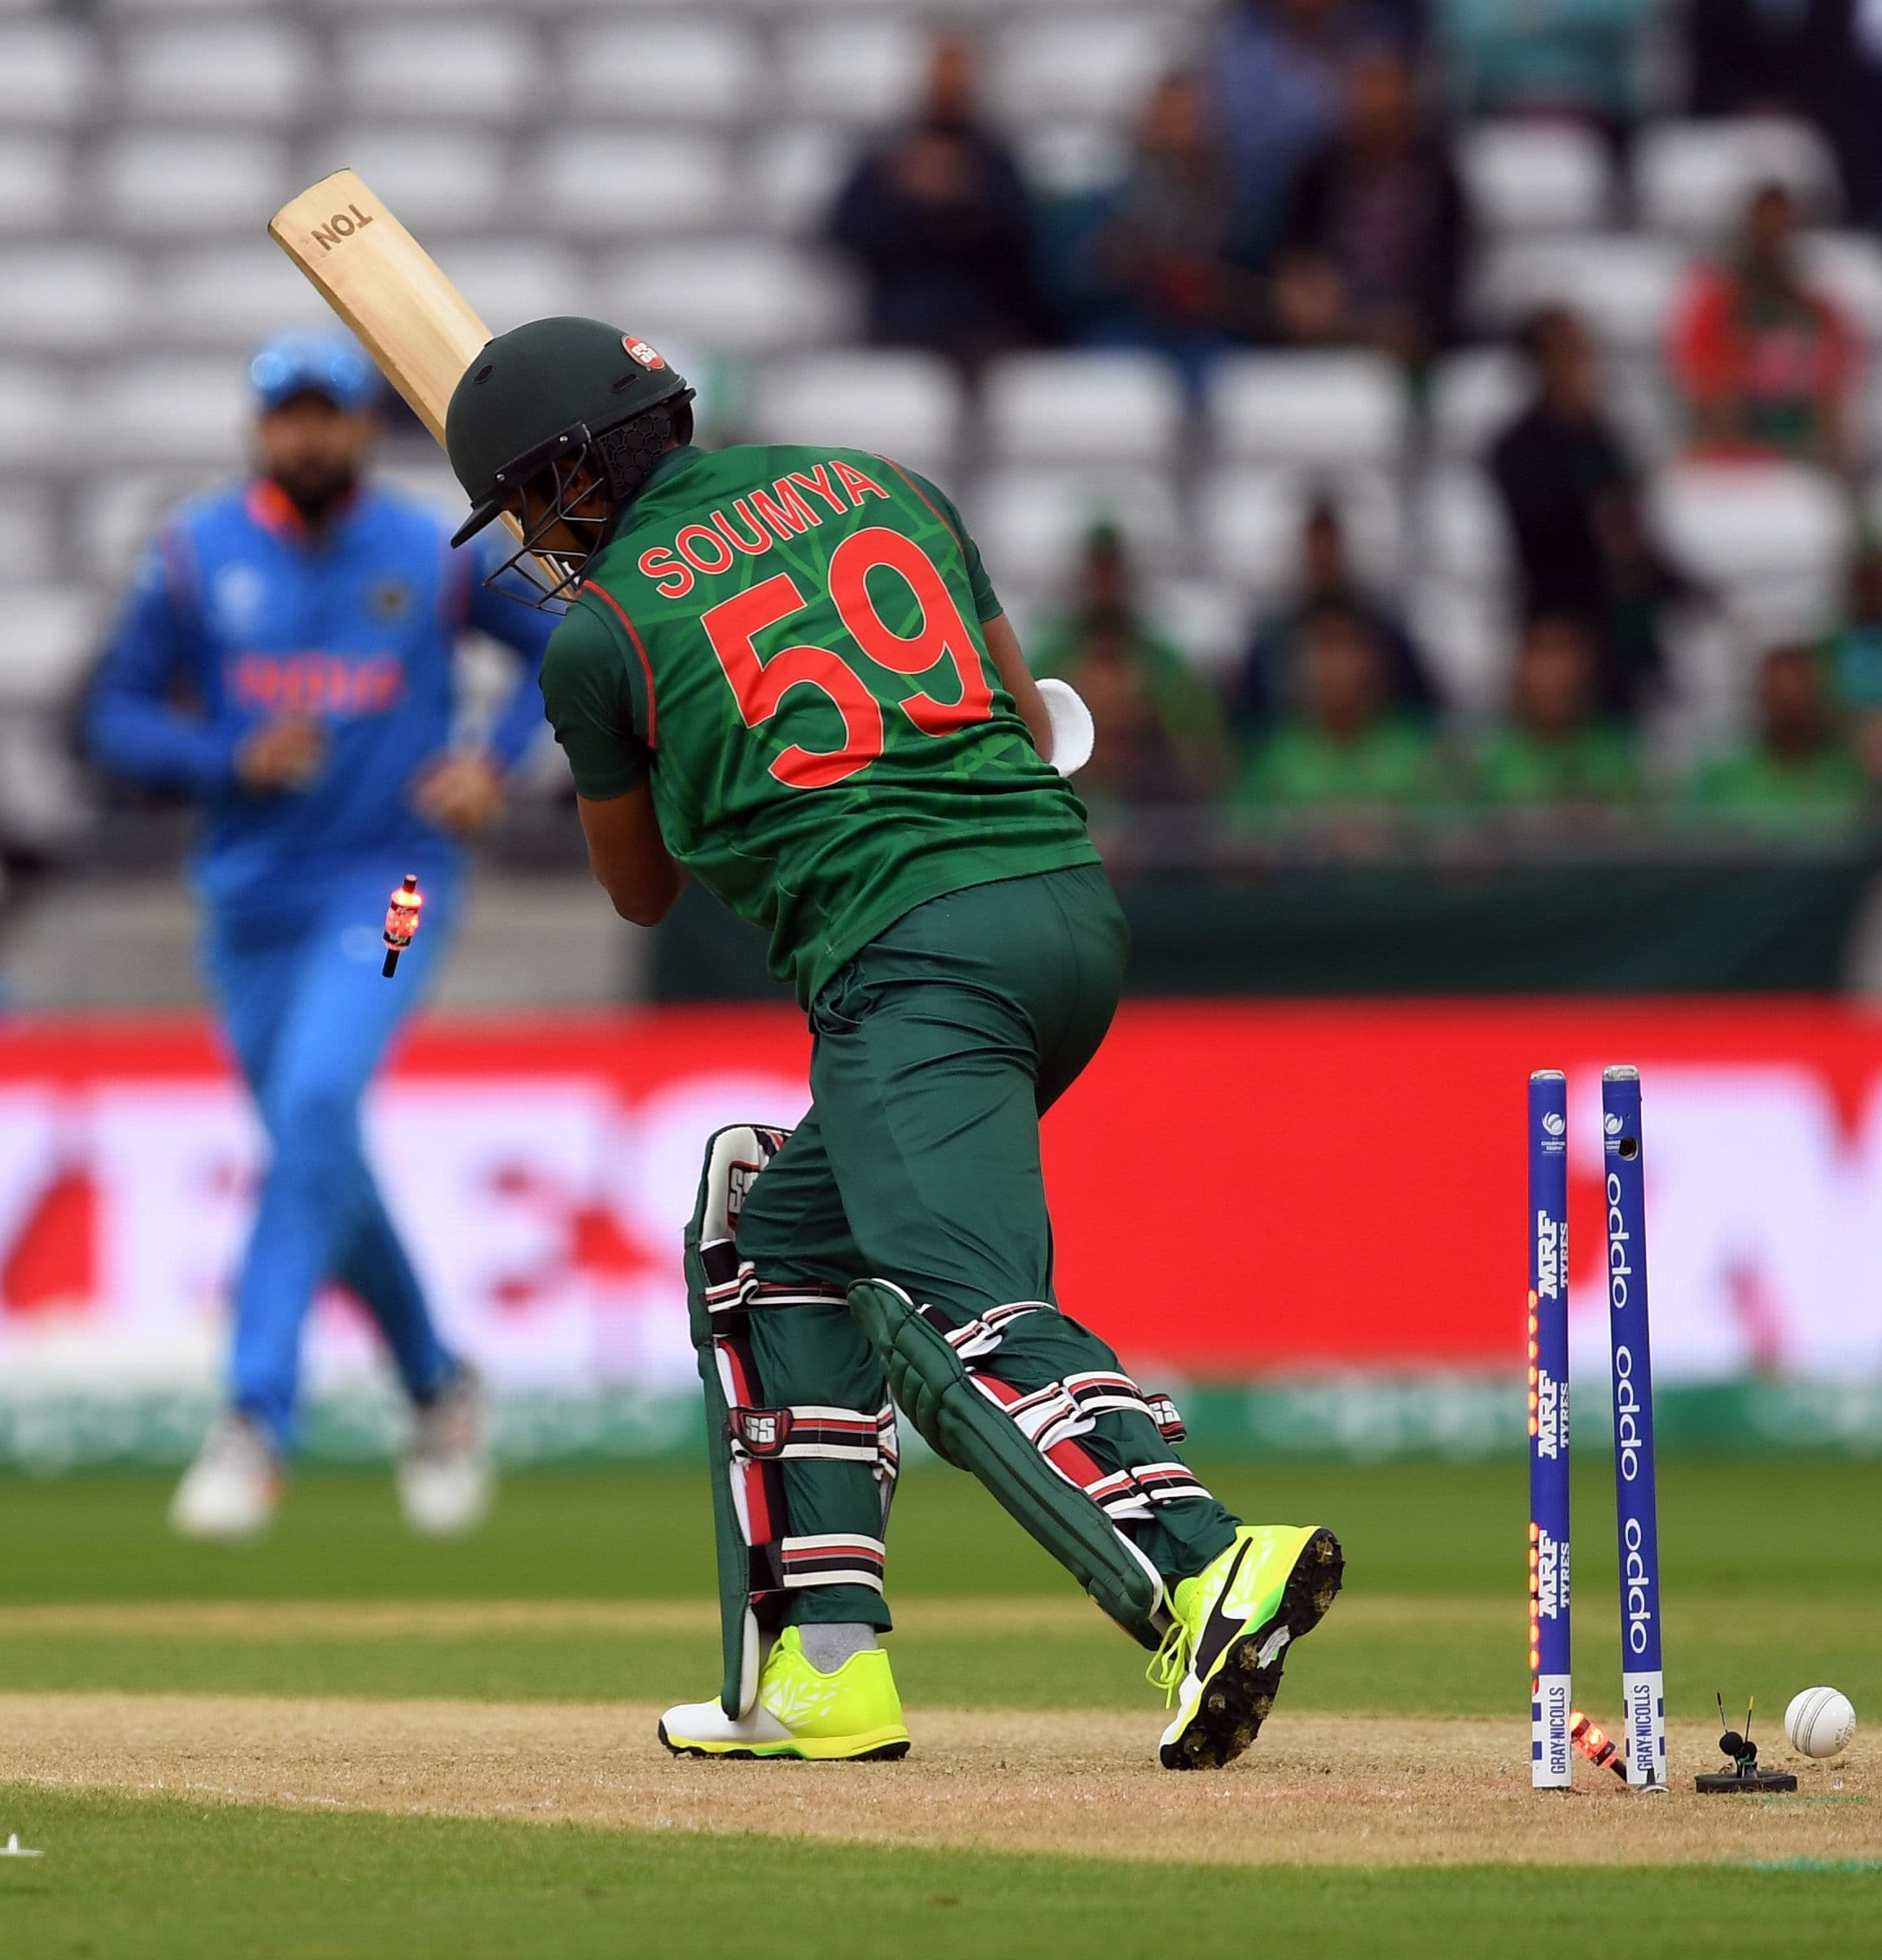 Bangladesh give India 264 runs to chase in Champions Trophy semi-final